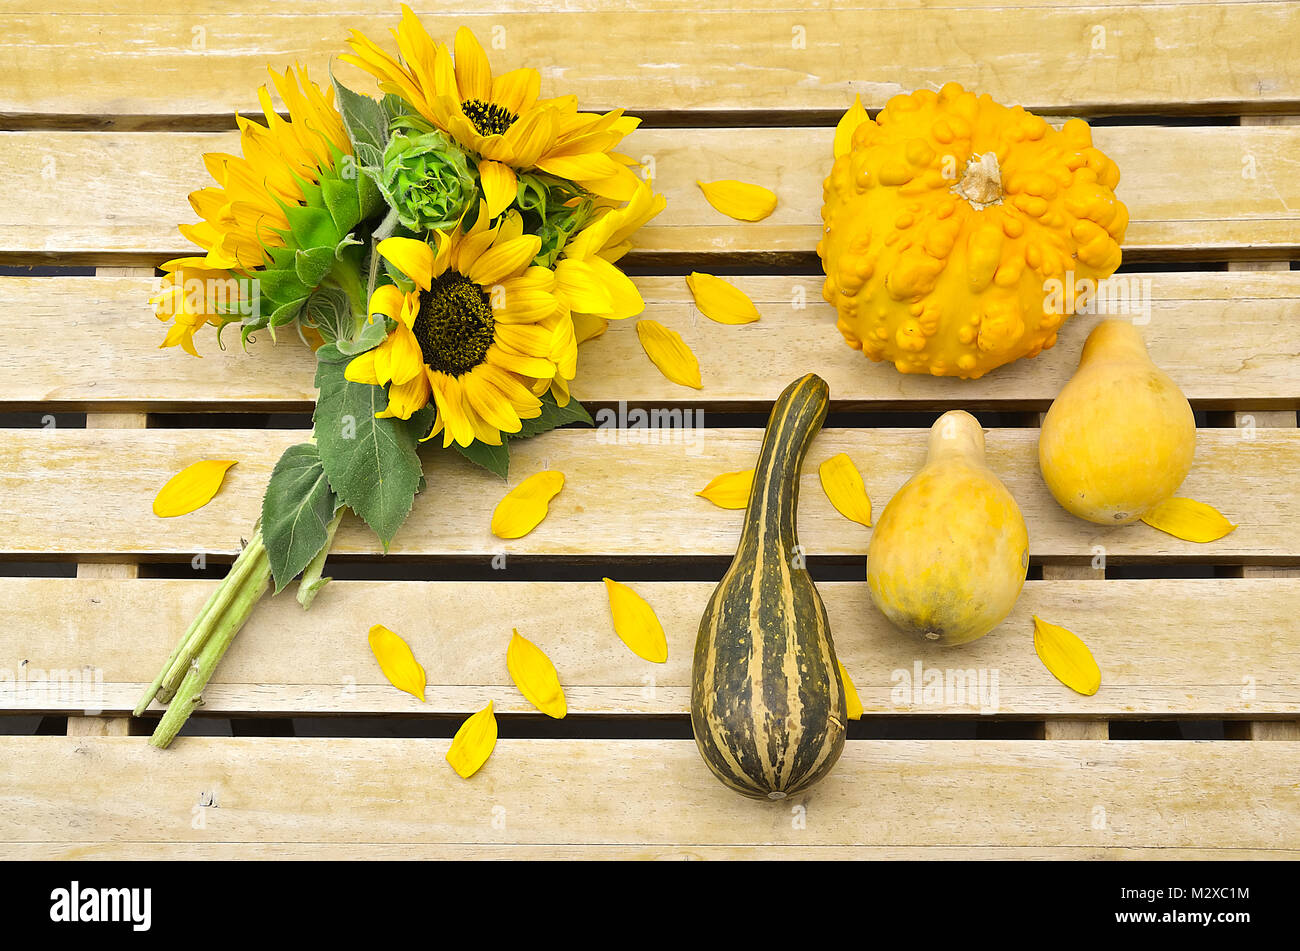 Sunflower bouquet and different pumpkins on a wooden table - Stock Image